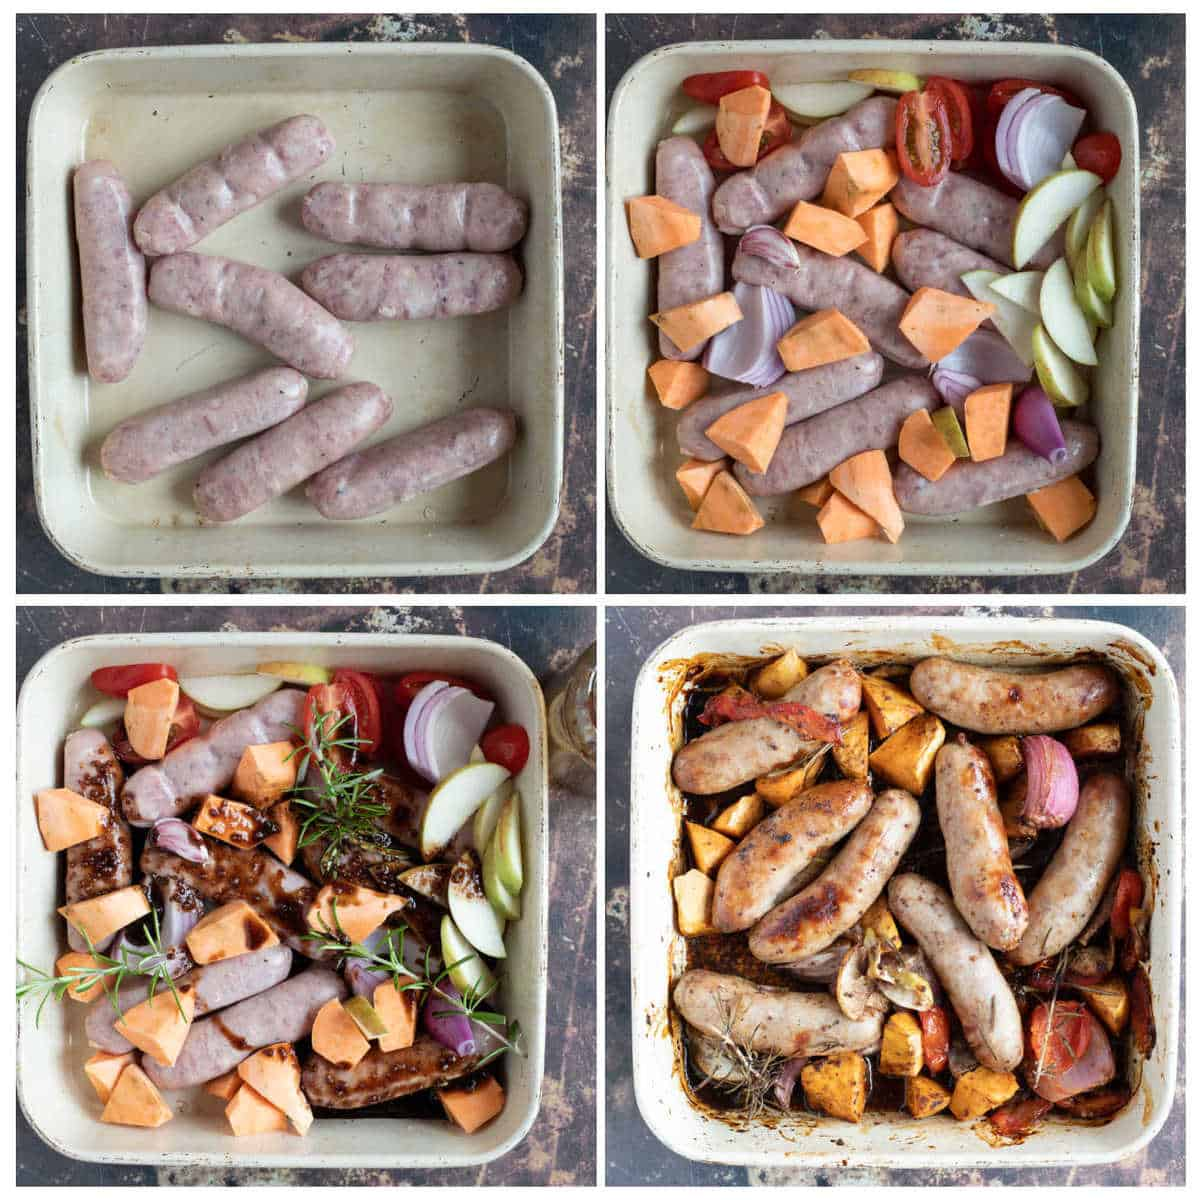 Step by step photo instructions for making the sticky sausage and sweet potato traybake.